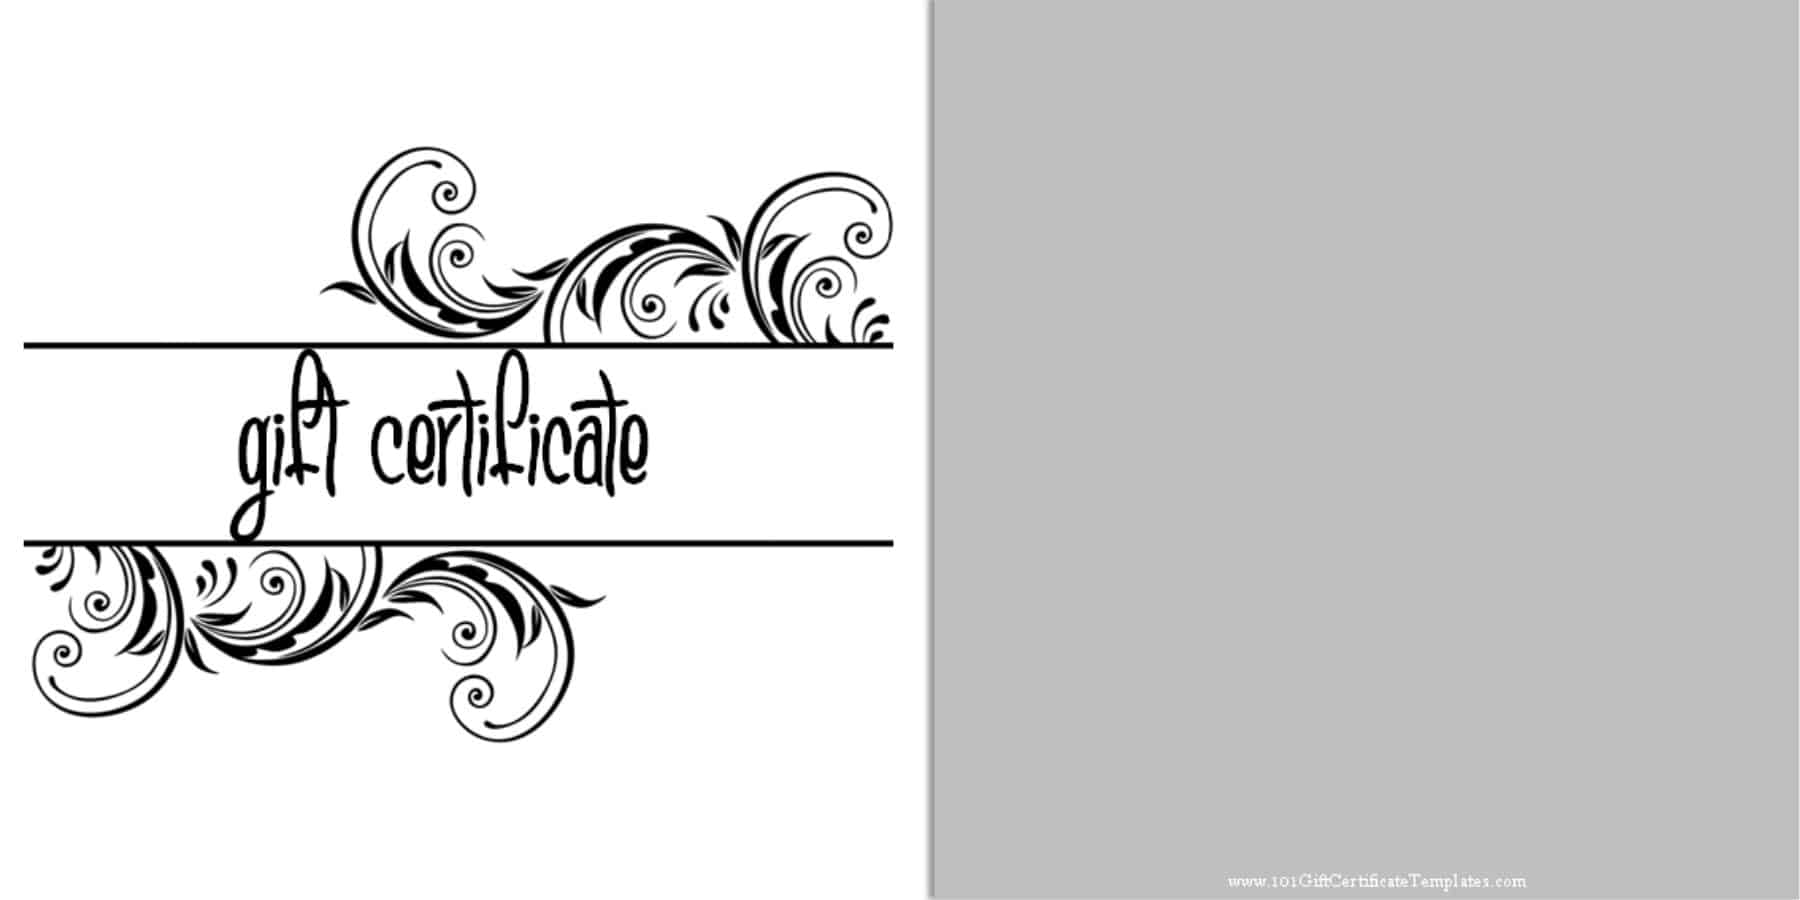 Printable gift certificate templates black and white gift voucher with a simple clean design alramifo Gallery